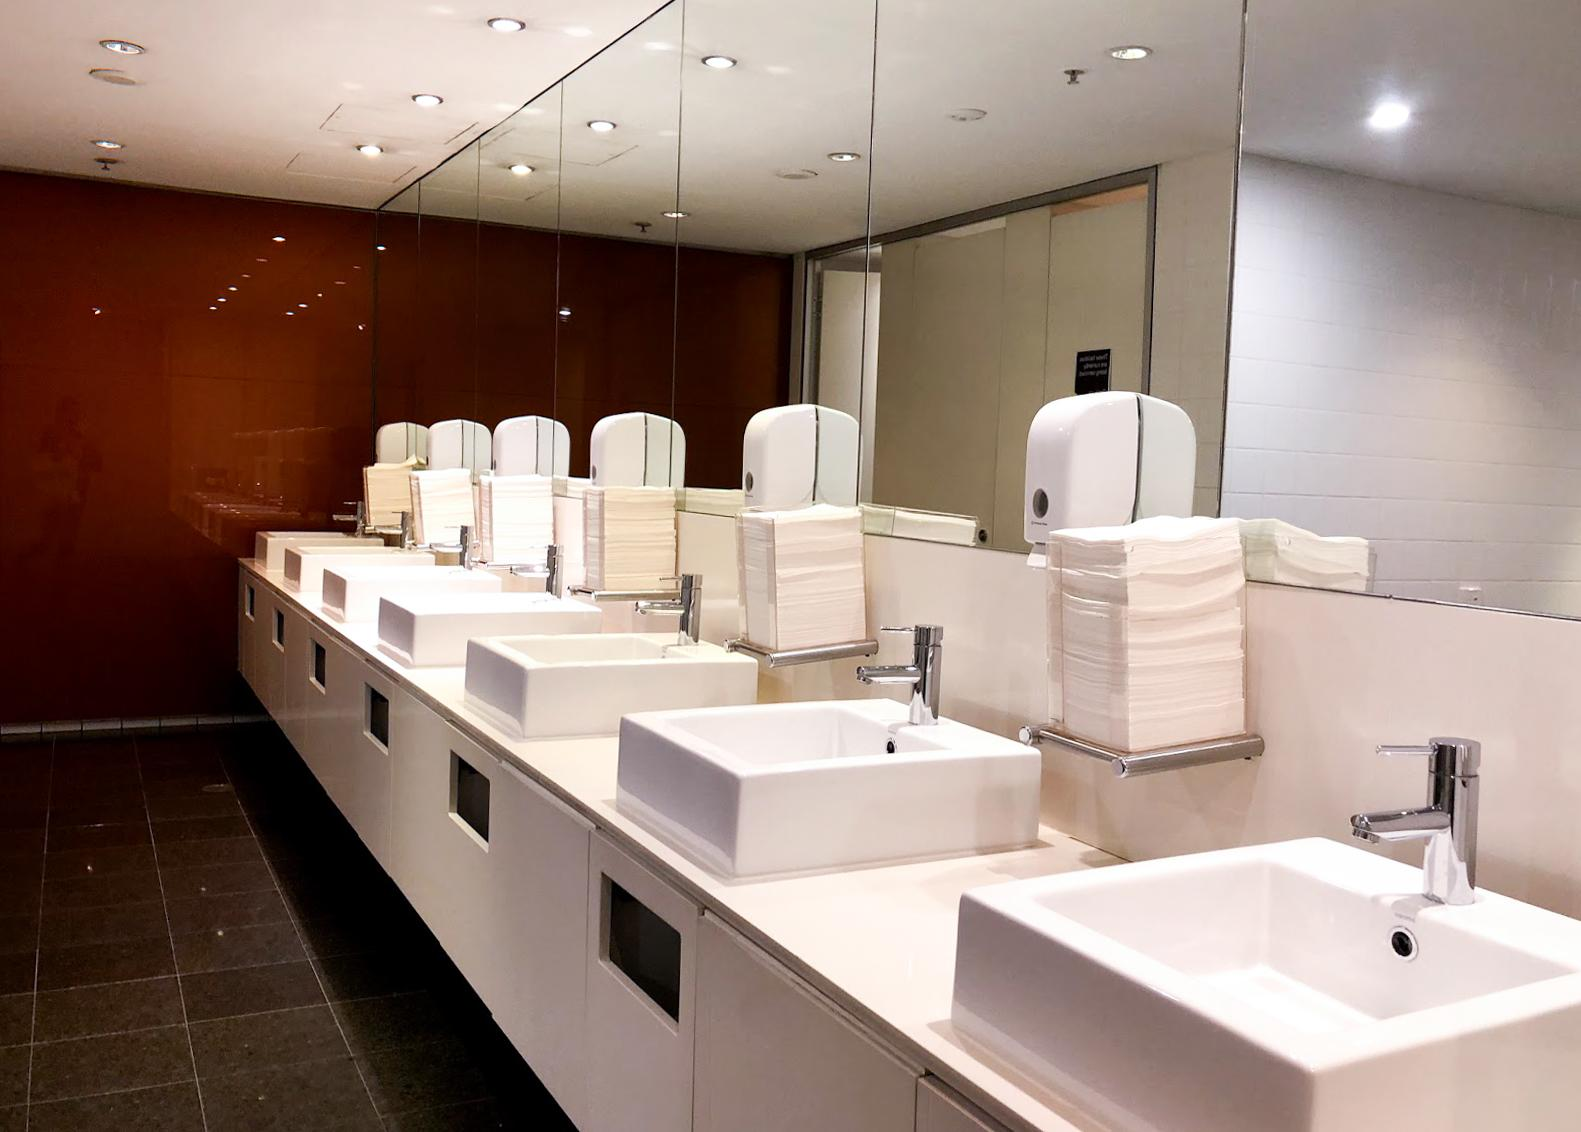 Qantas Club Sydney bathroom